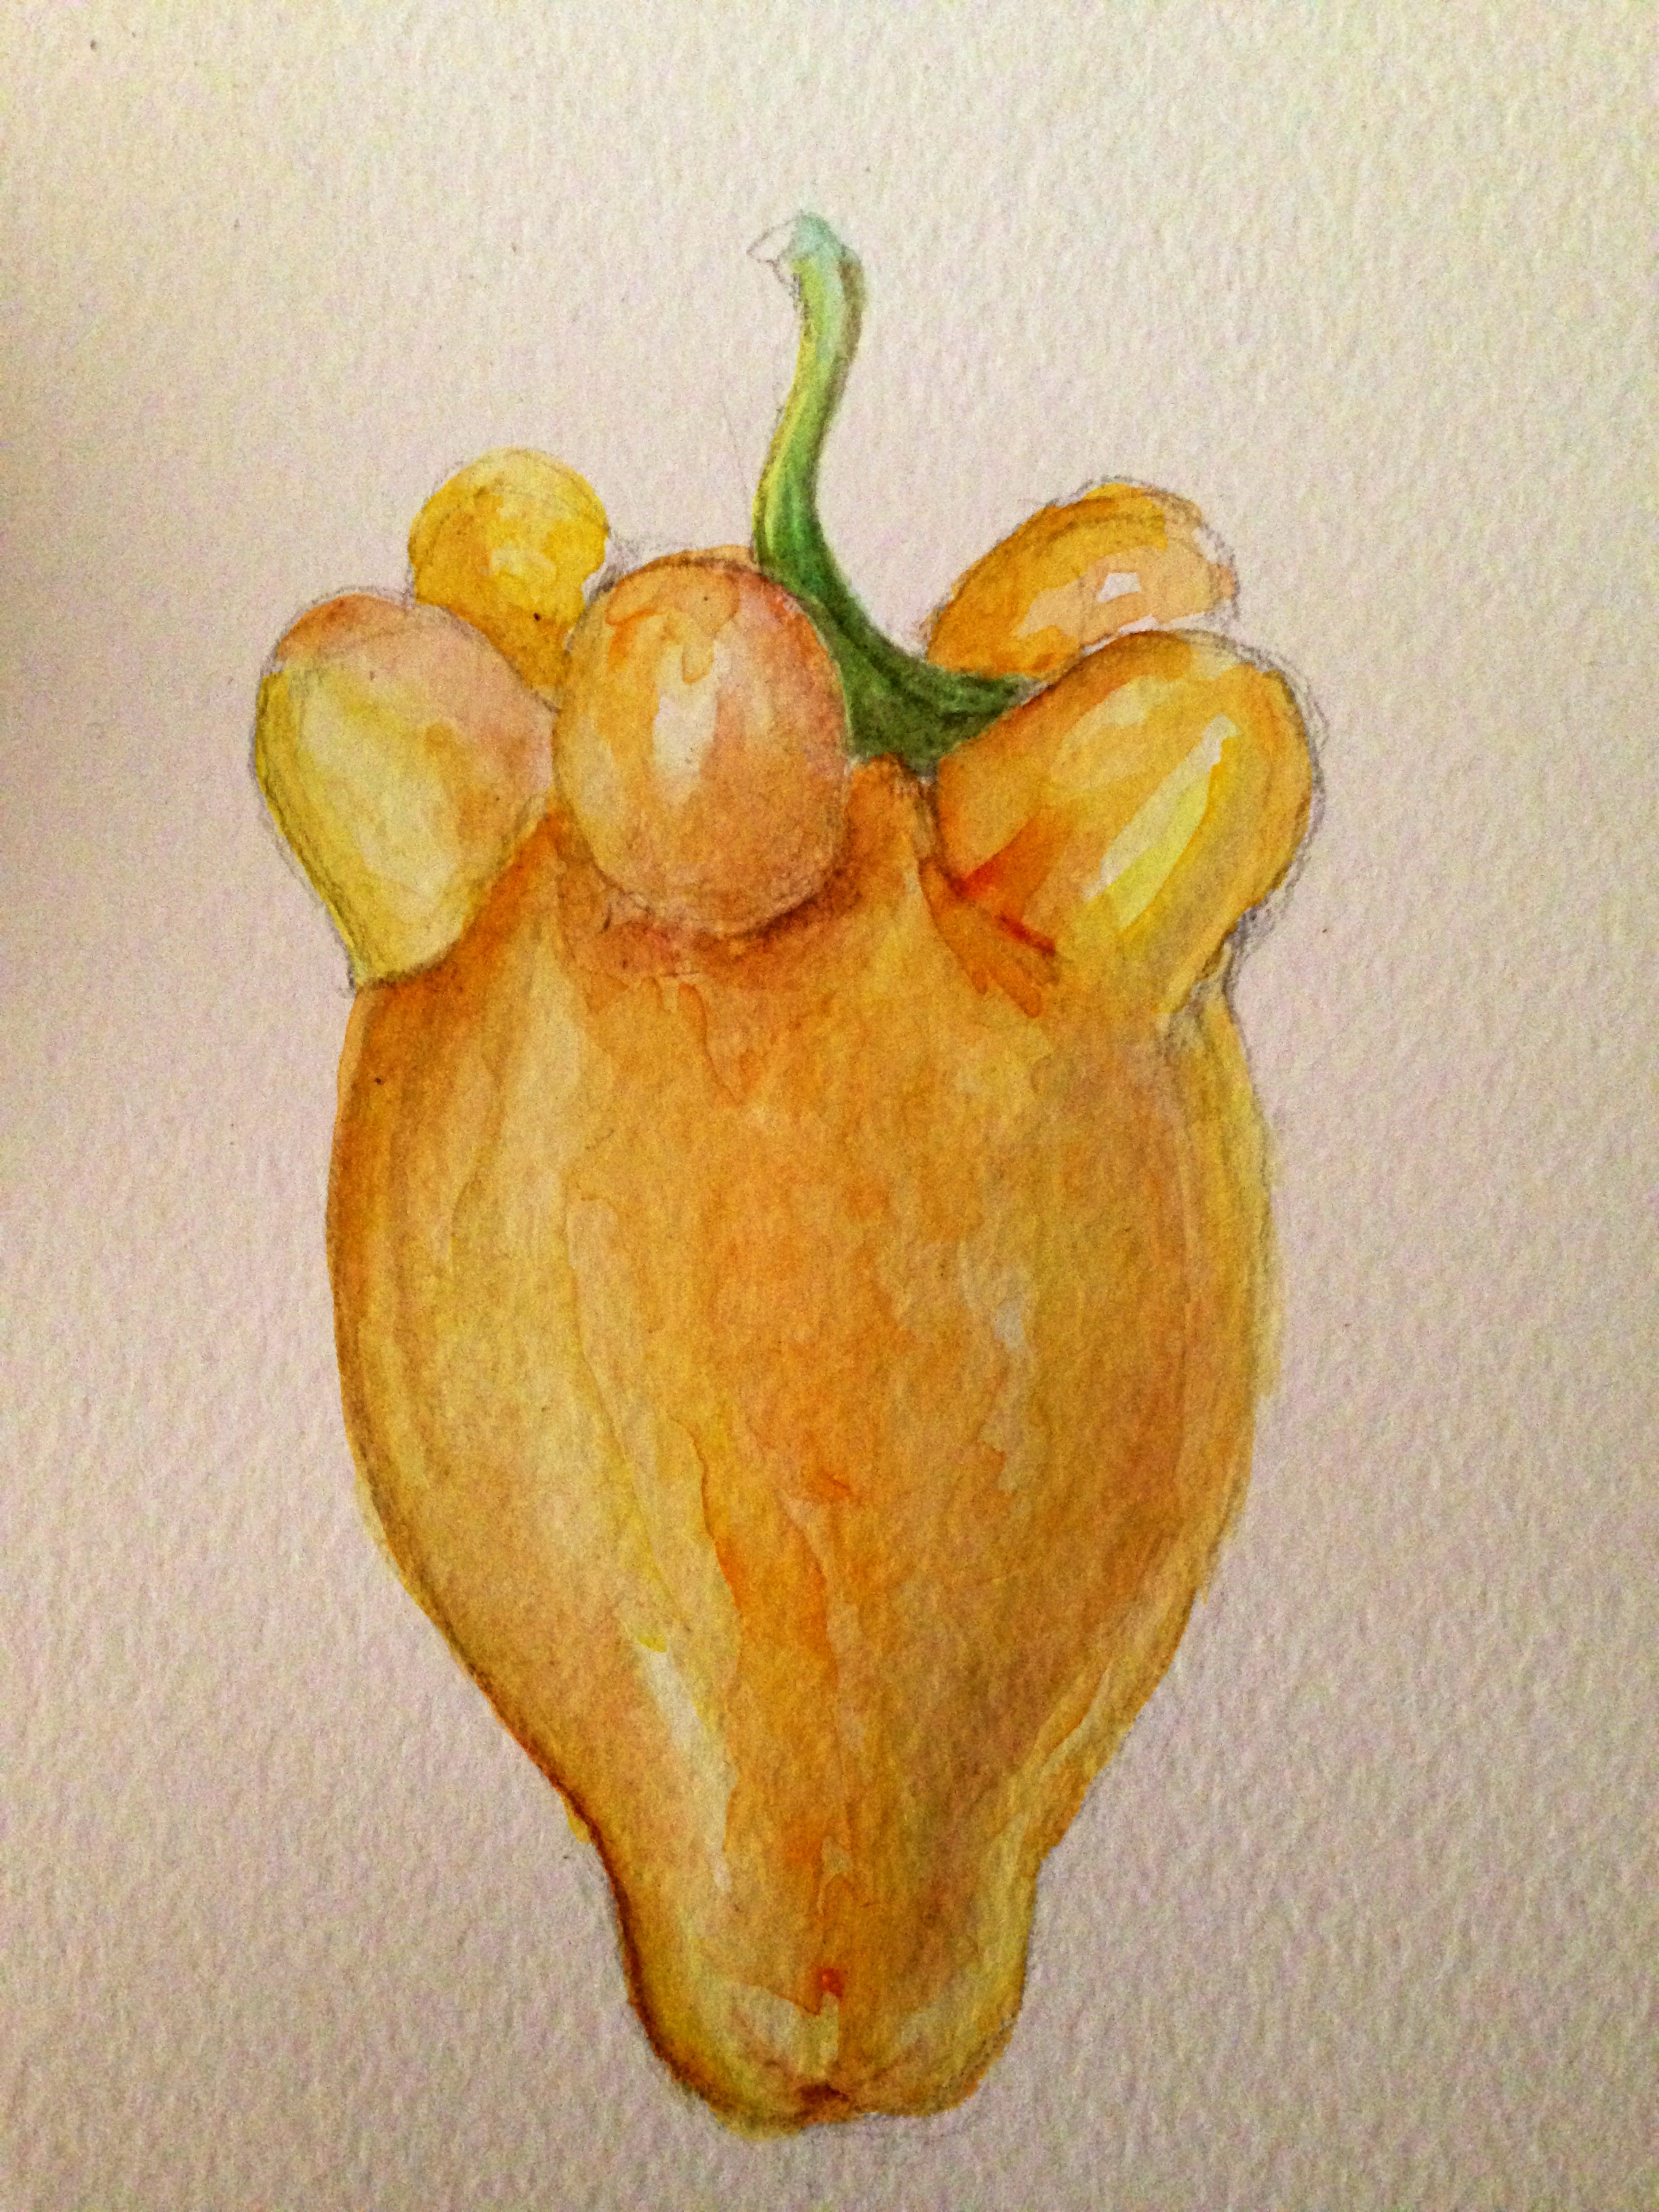 The finished watercolour of the whole fruit...